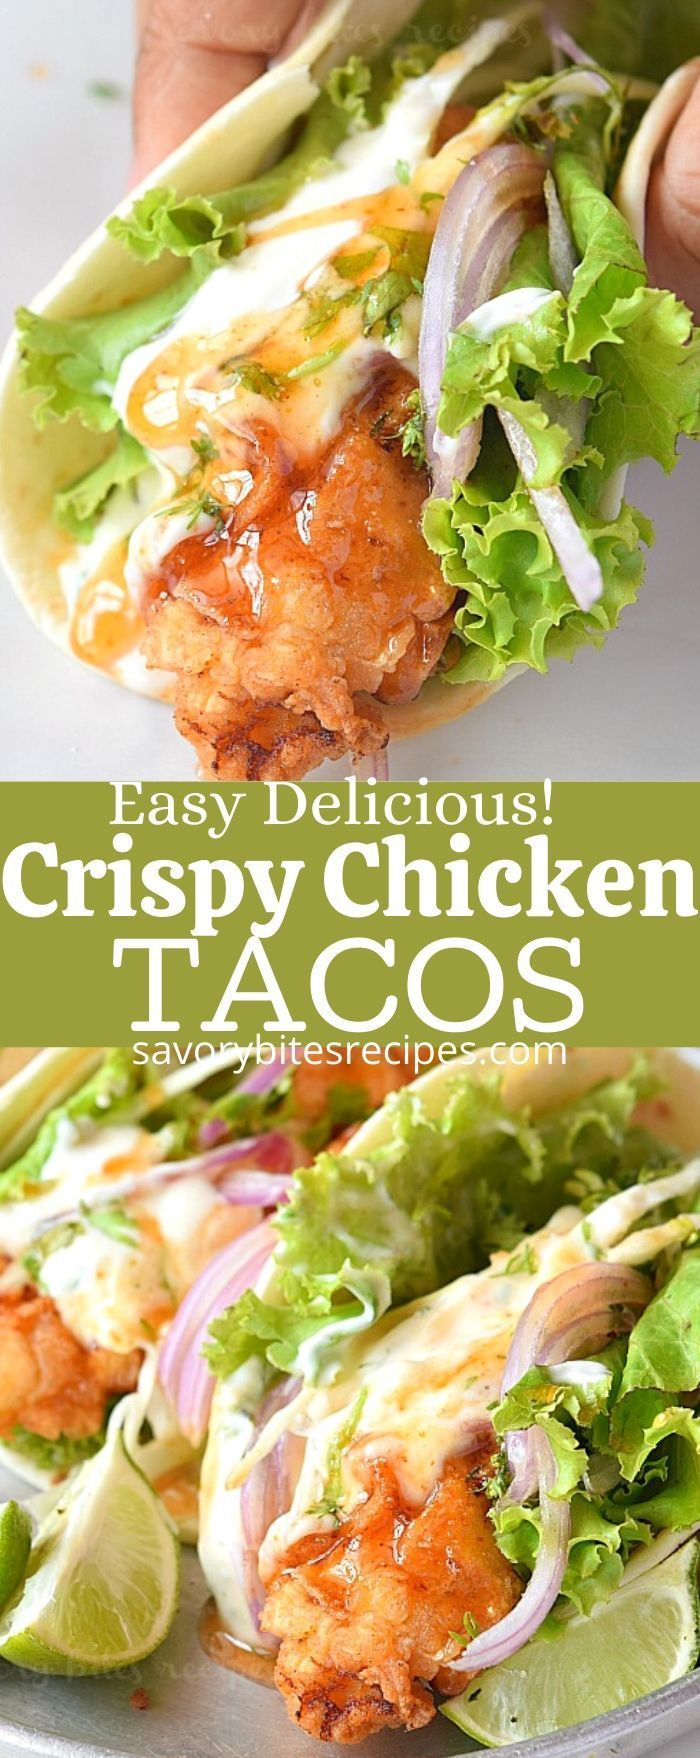 Best Crispy Chicken Tacos with TWO Sauces you do not want miss!